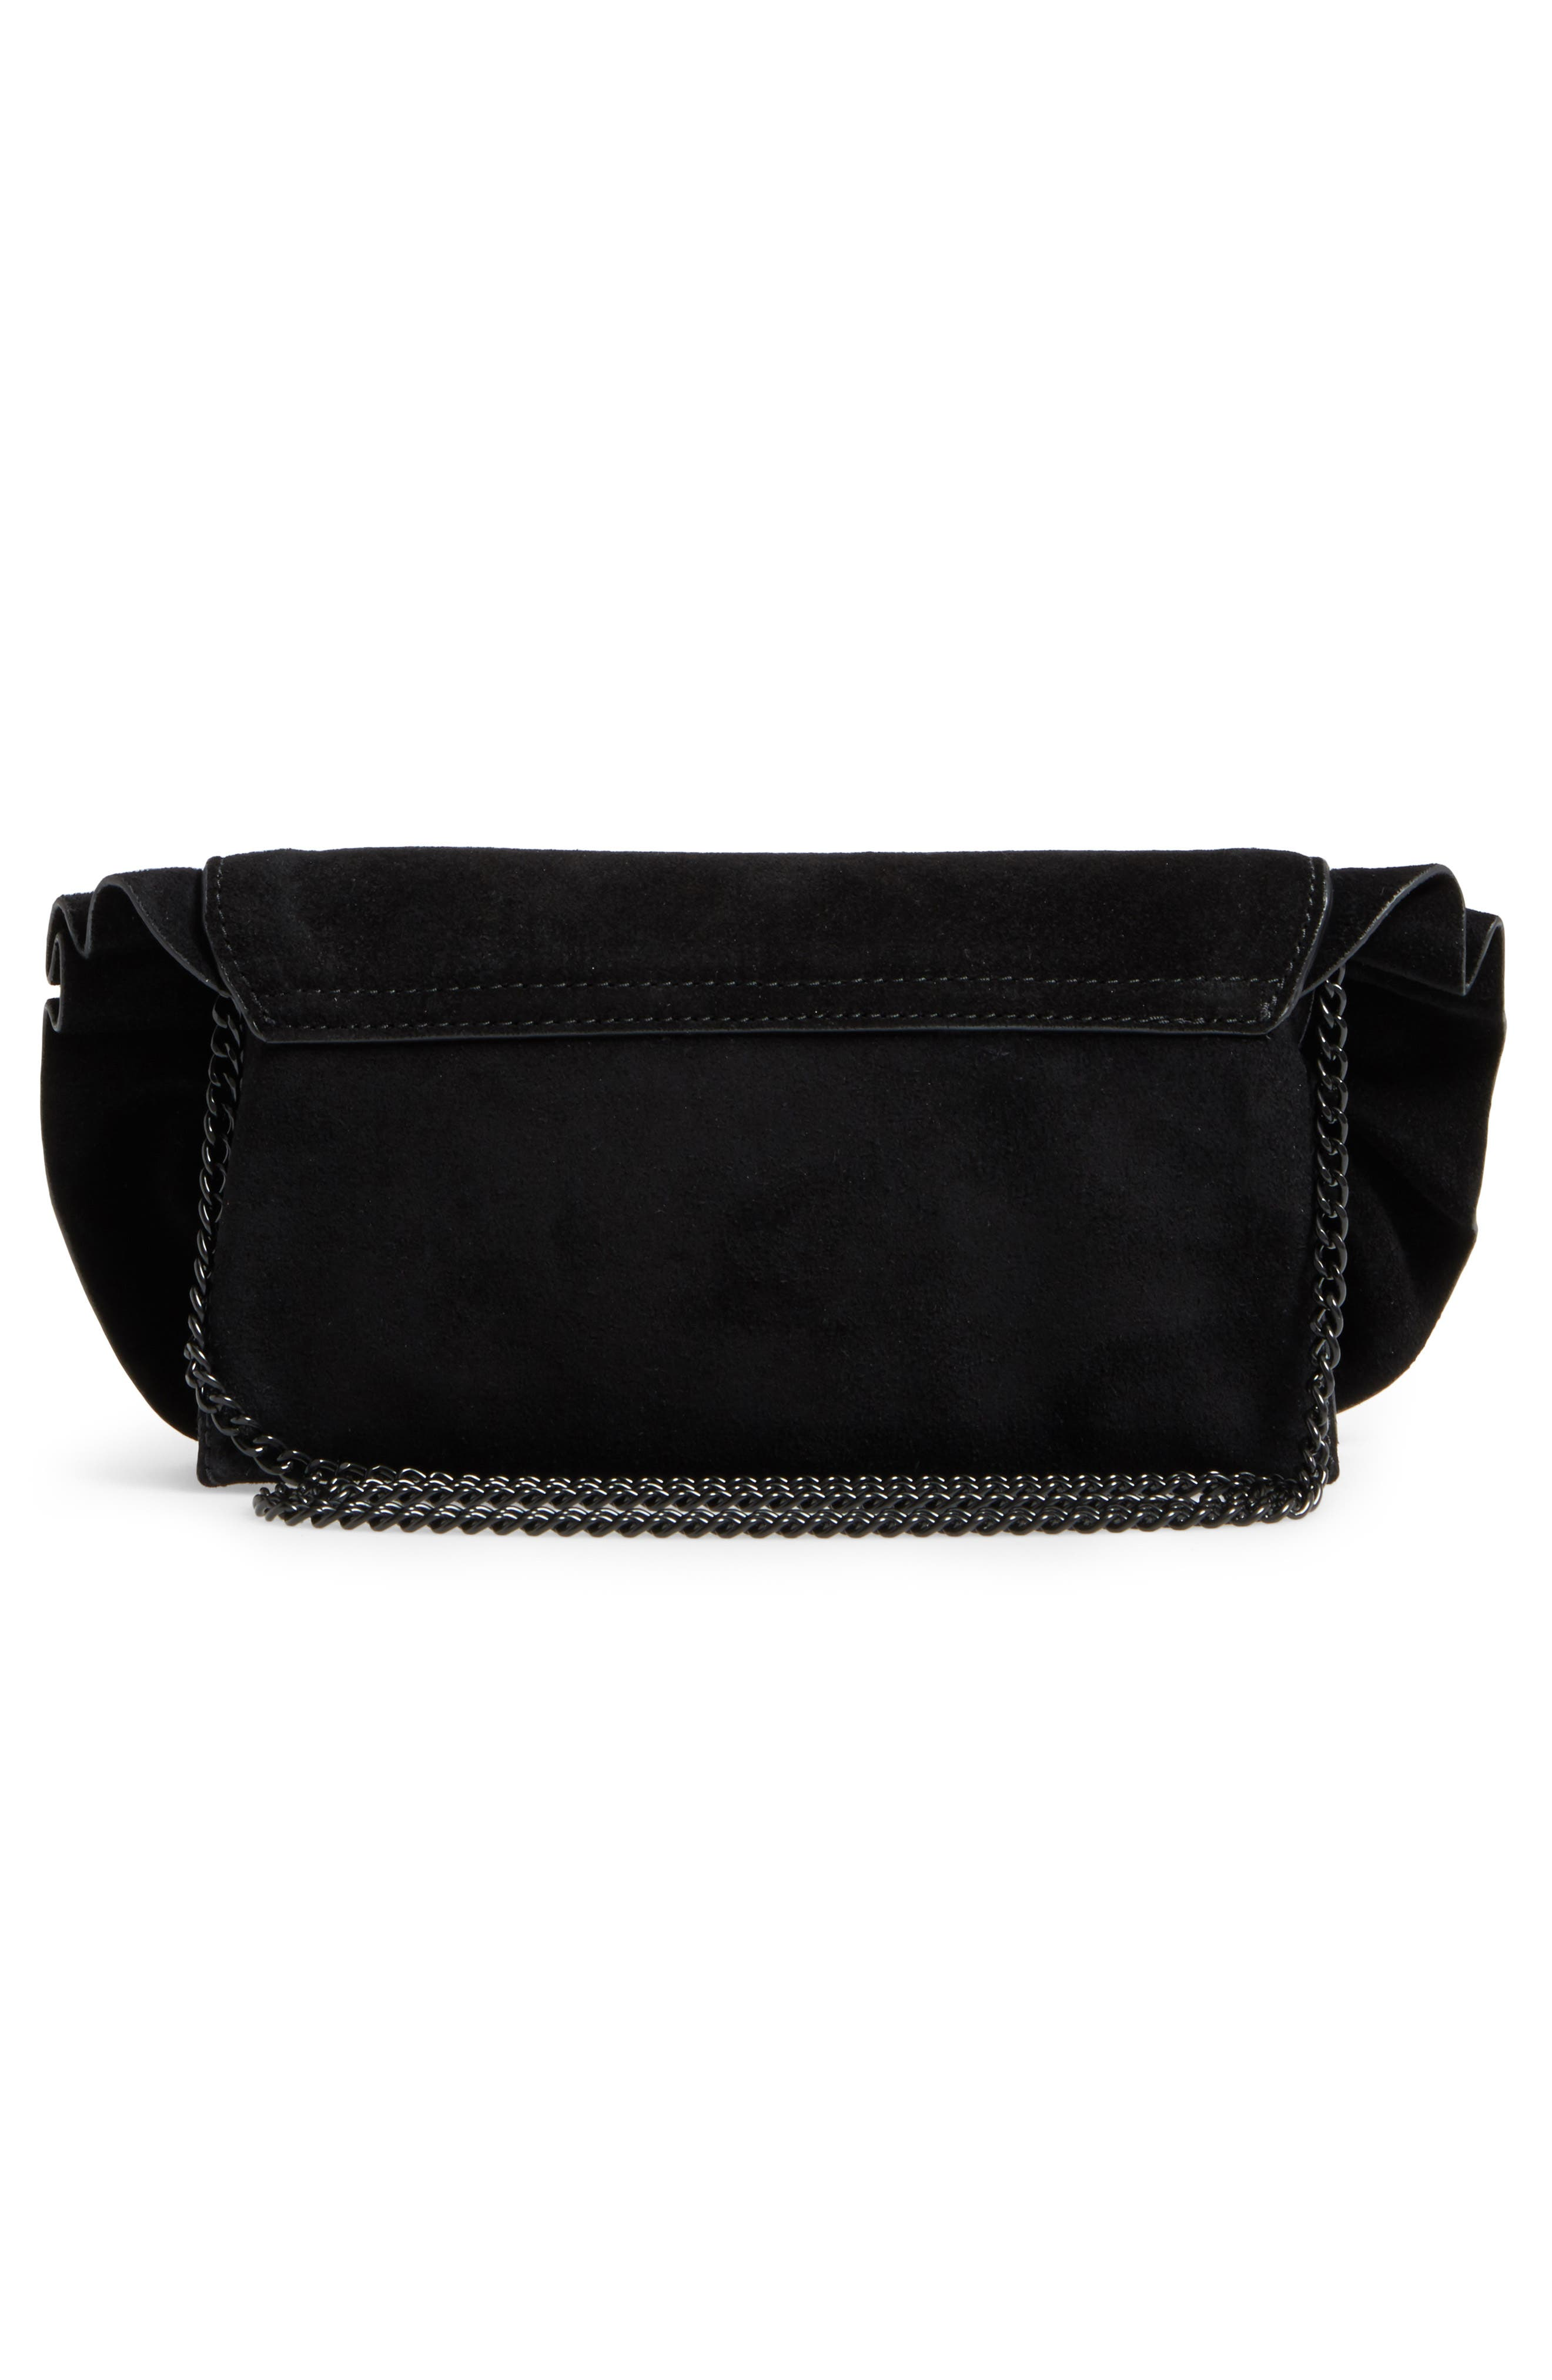 Ruffle Clutch,                             Alternate thumbnail 3, color,                             001